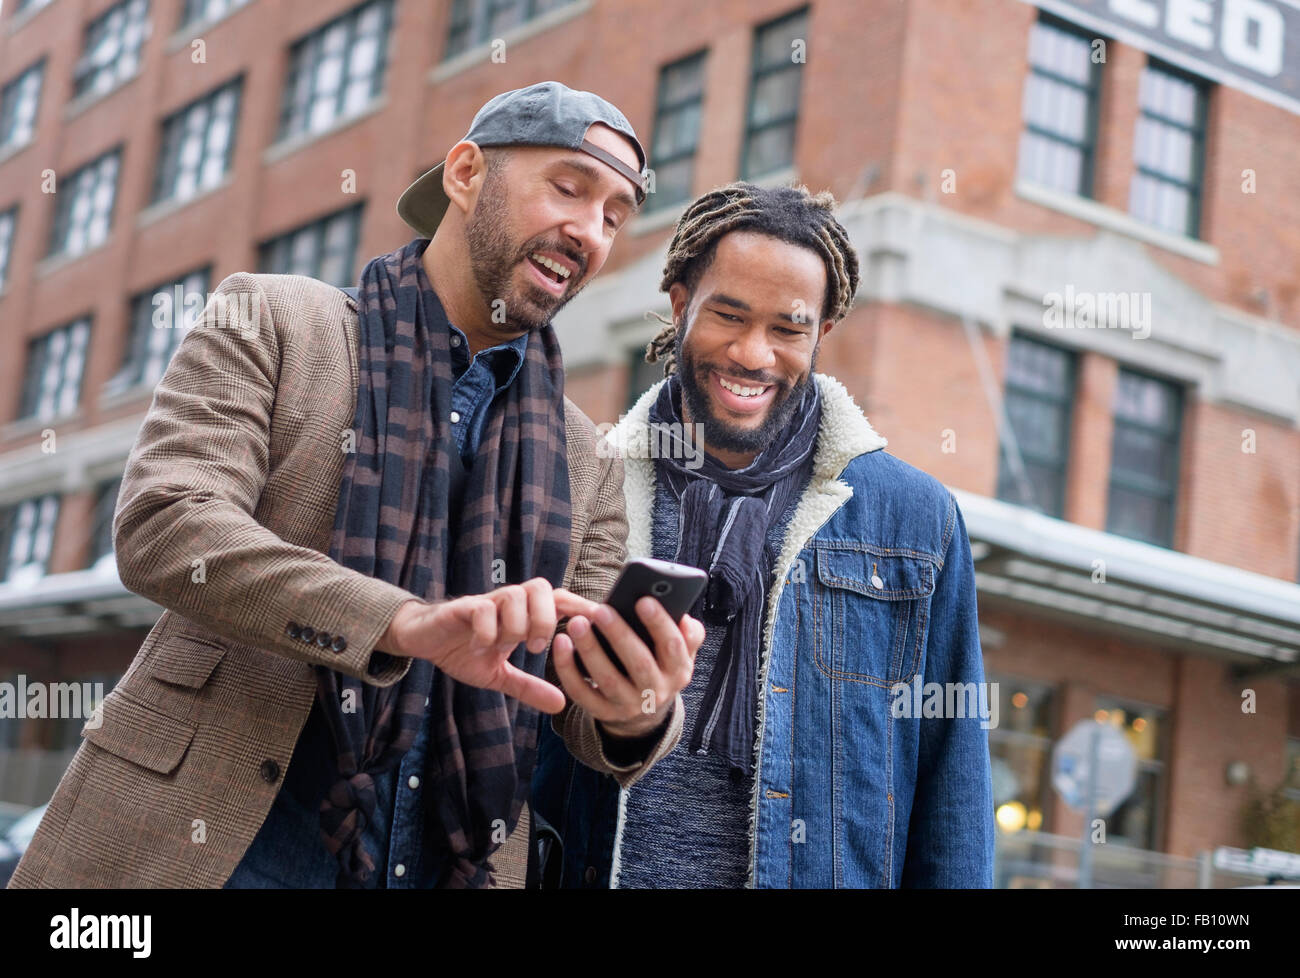 Smiley homosexual couple looking at smart phone in street Stock Photo